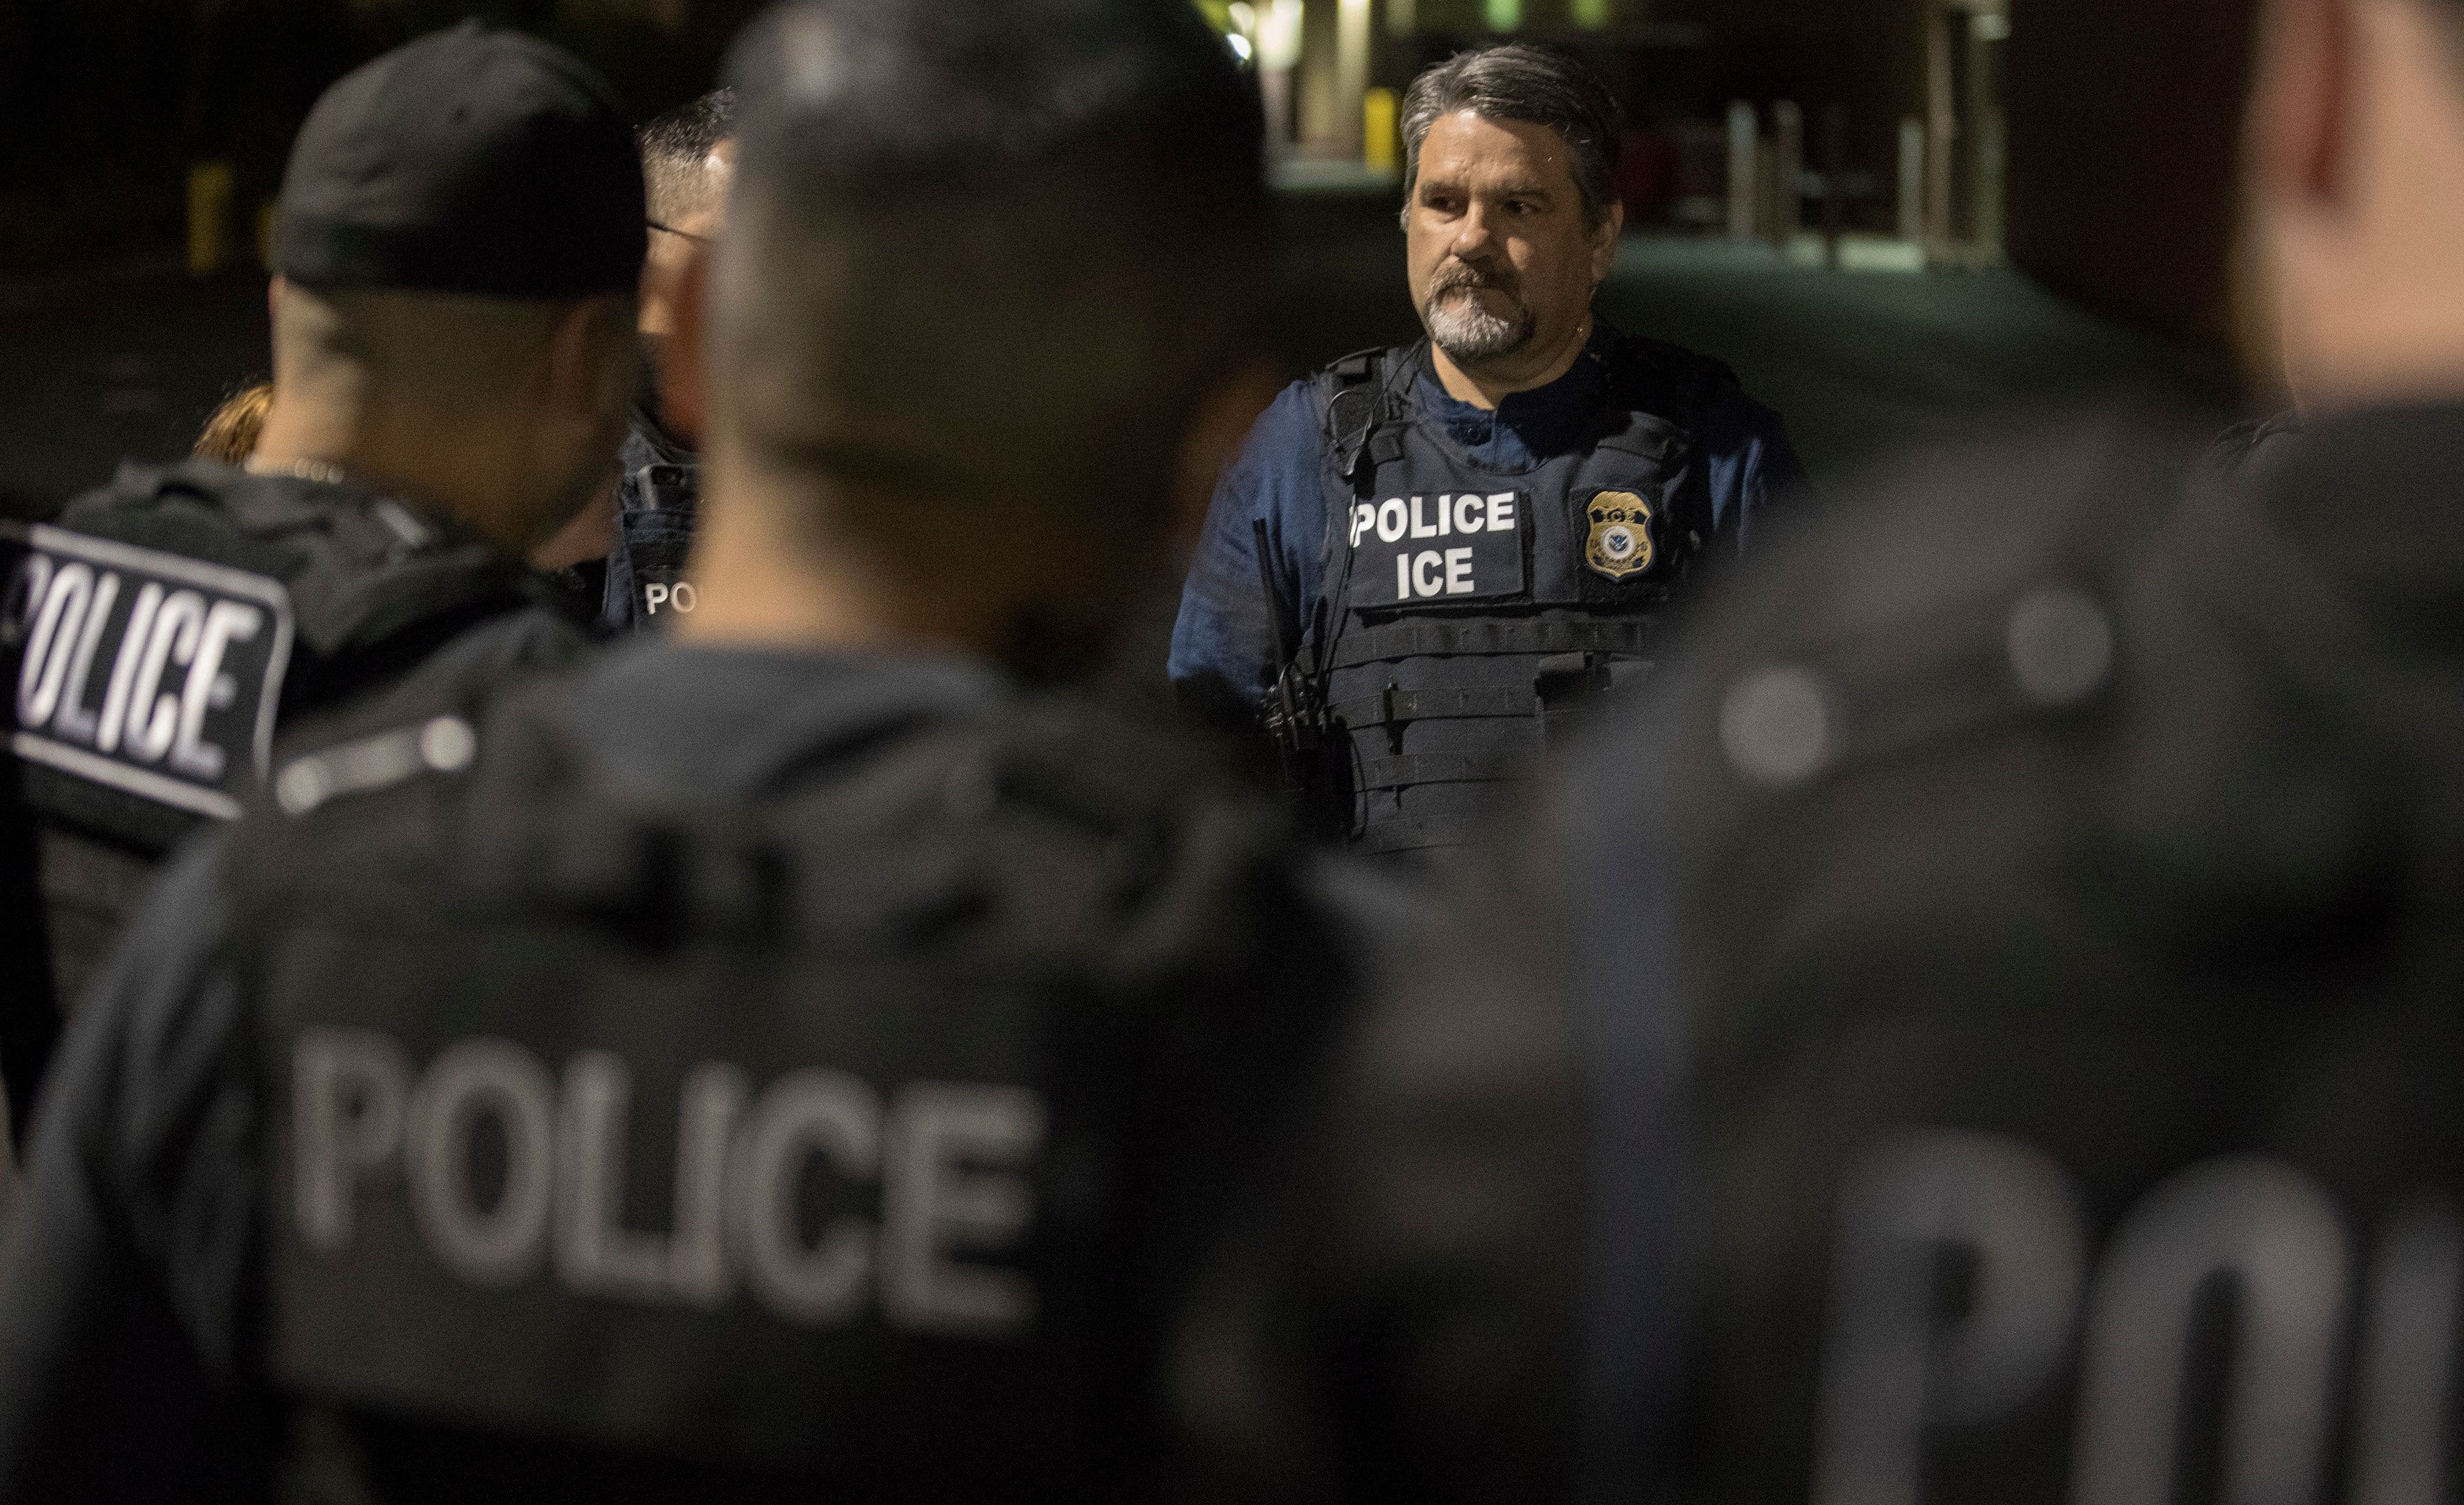 COMPTON, CALIF. -- TUESDAY, APRIL 18, 2017:   Immigration and Customs Enforcement assistant field office director Jorge Field holds a pre-dawn meeting with ICE agents in a parking lot of a shopping center in Compton, Calif., on April 18, 2017. (Brian van der Brug/Los Angeles Times via Getty Images)